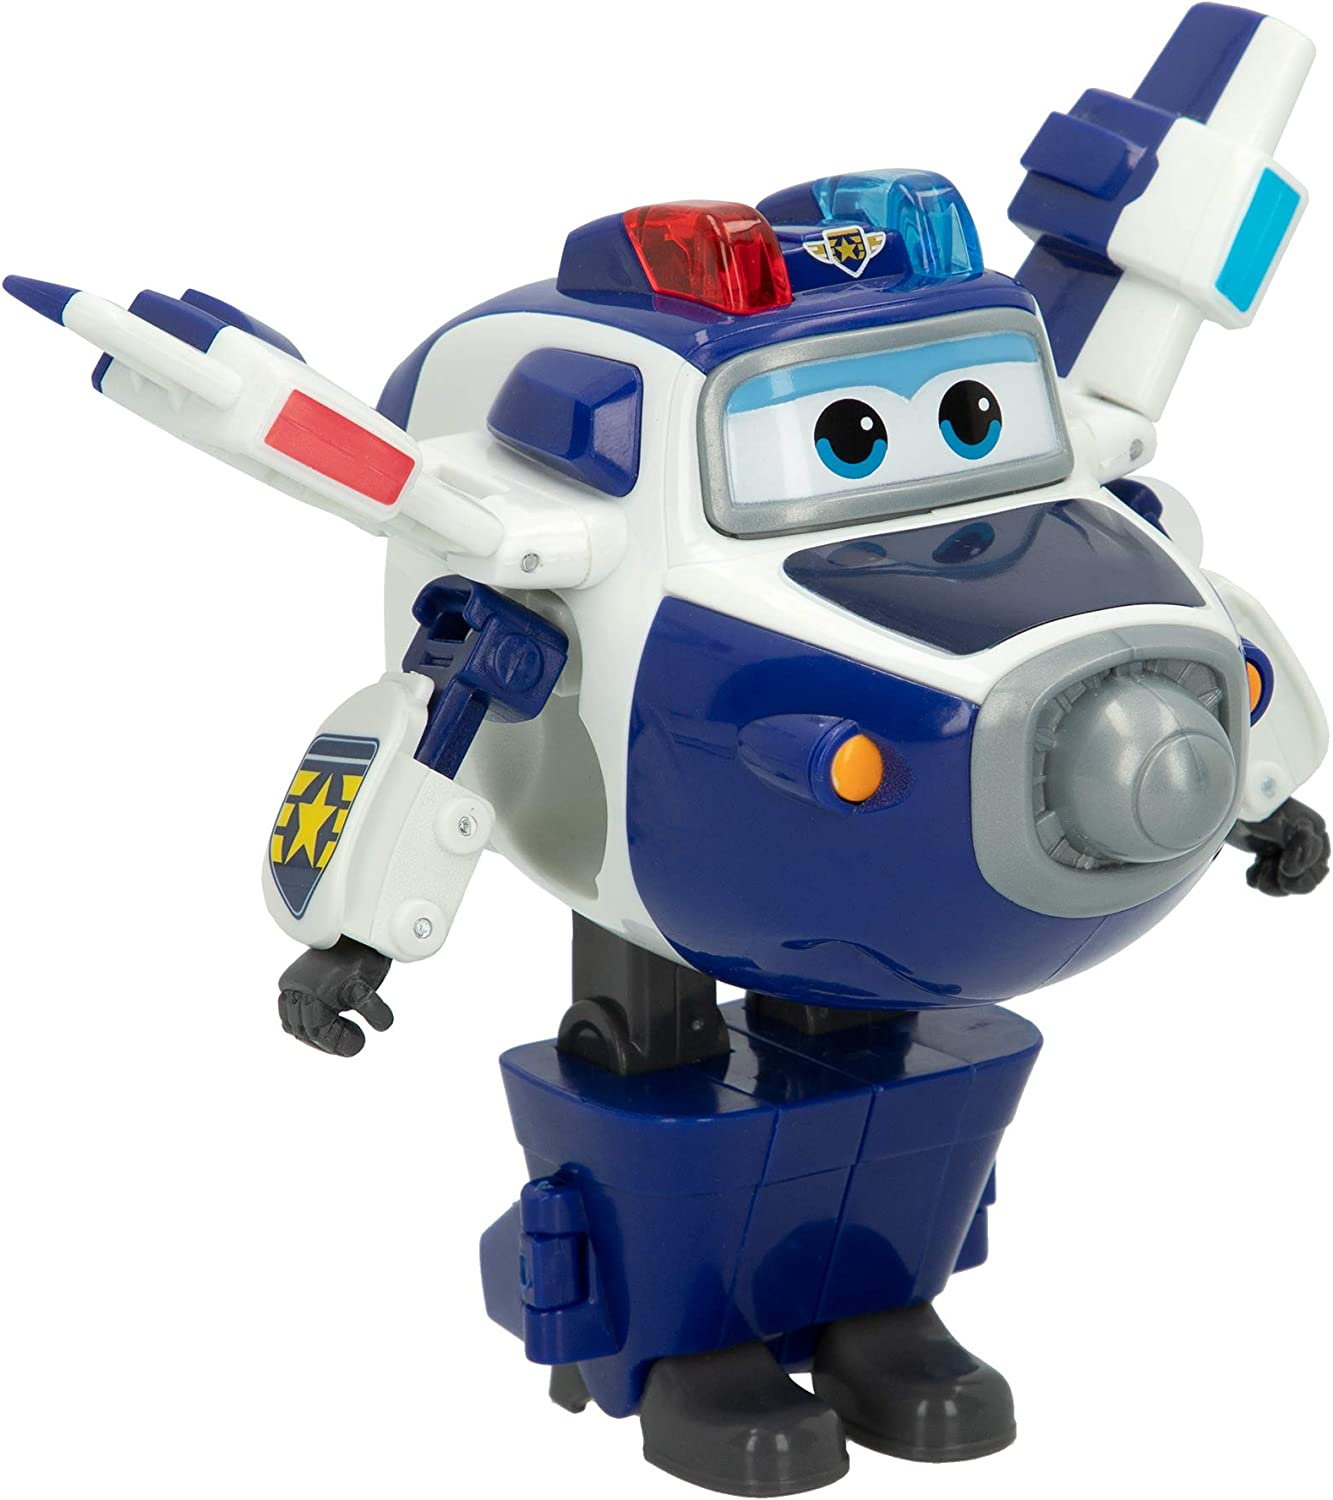 Super Wings - Donnie, personaje transformable, 13.5 cm, color amarillo y azul (ColorBaby 75873): Amazon.es: Juguetes y juegos